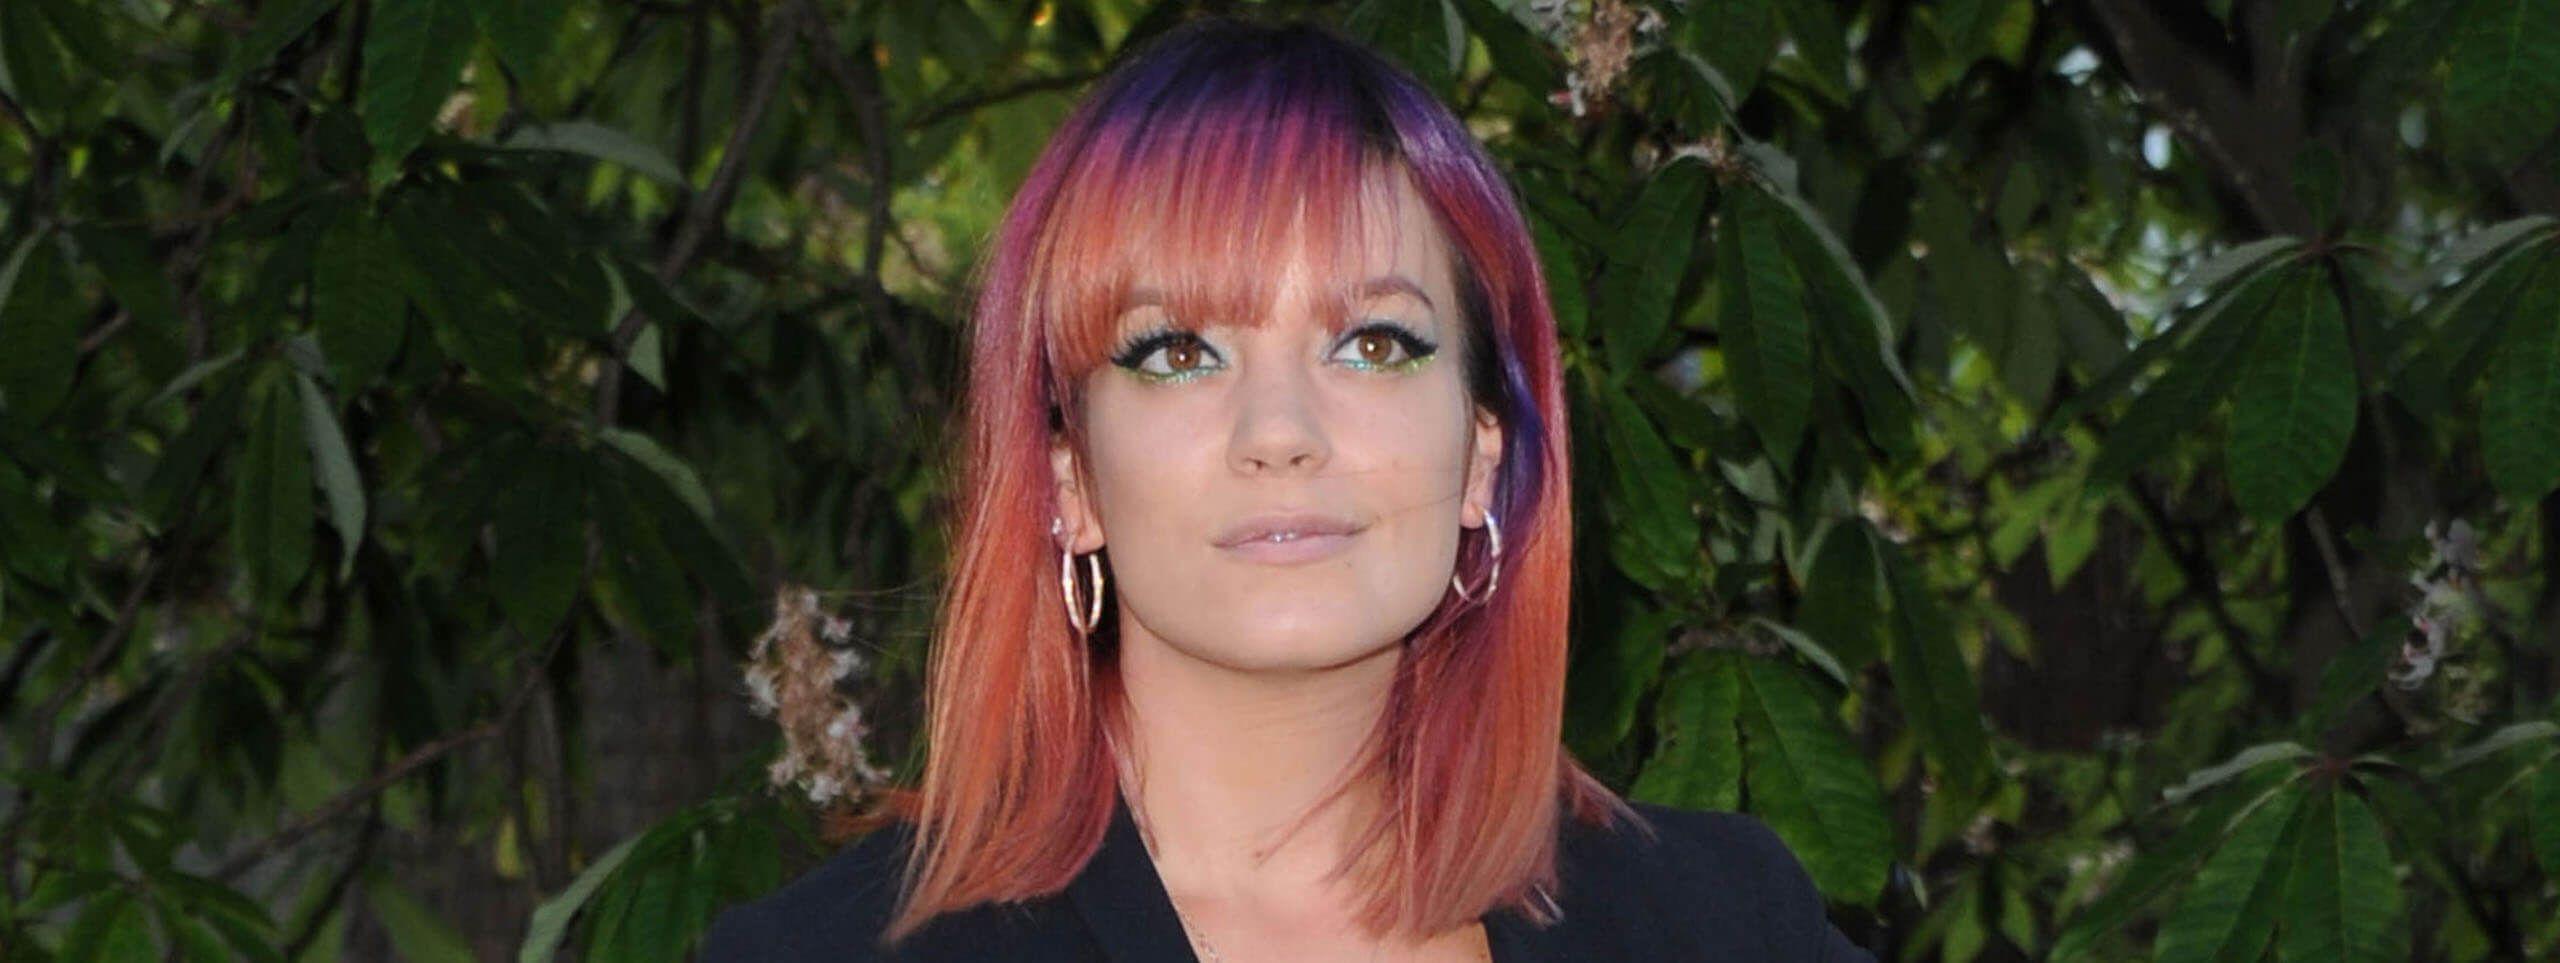 Multicoloured hairstyles with fringe and bangs